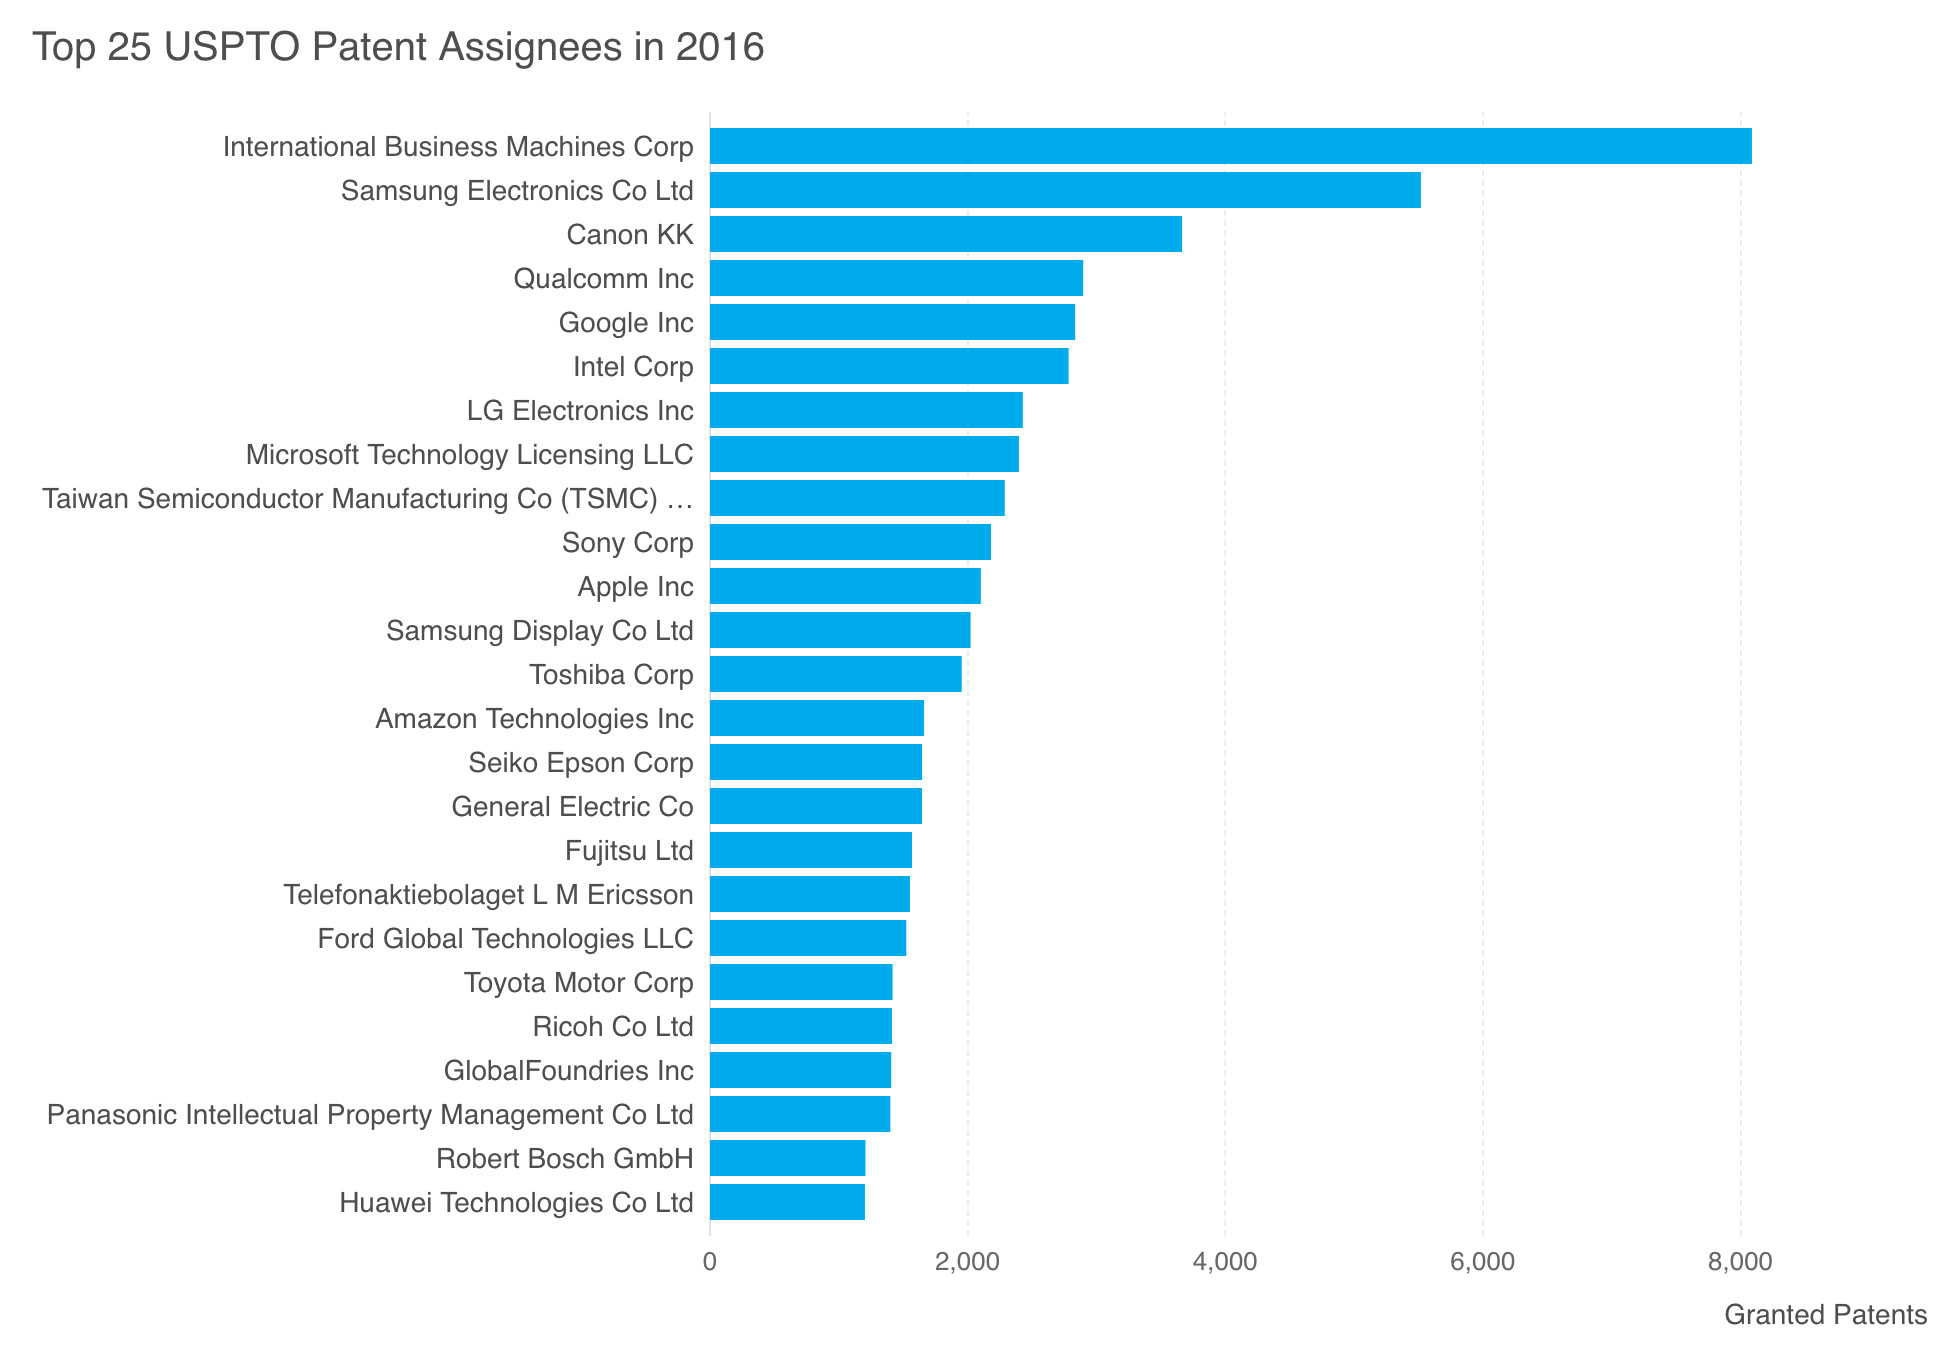 IBM was awarded the most patents in the US in 2016.